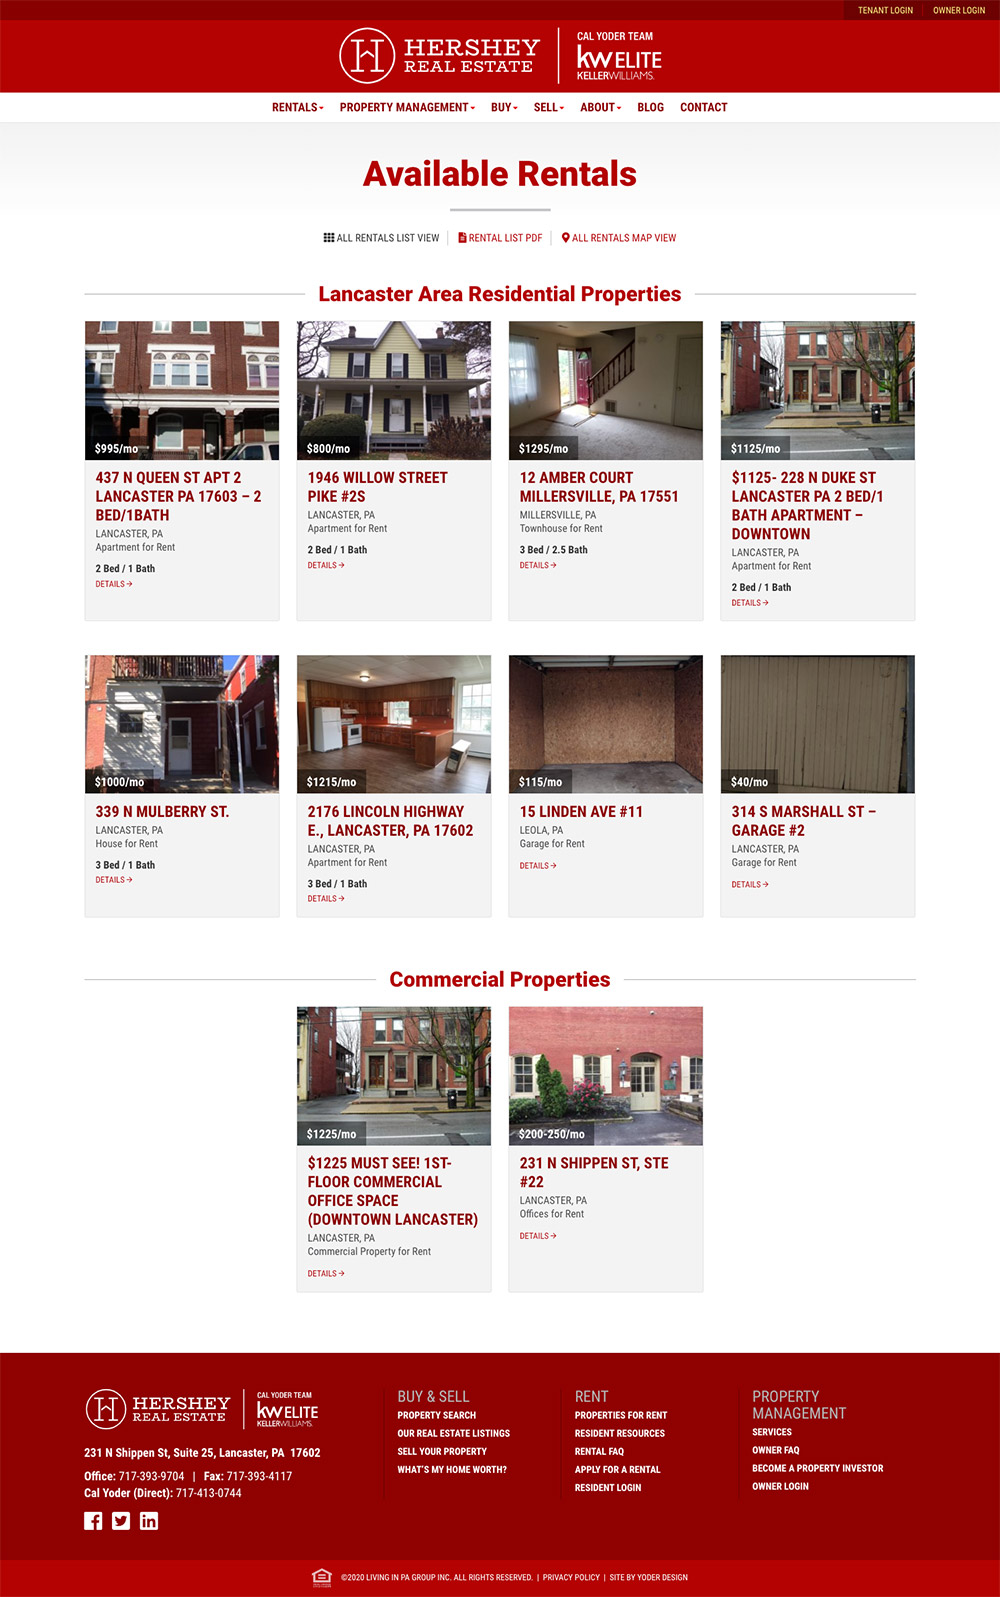 Available rentals page screenshot